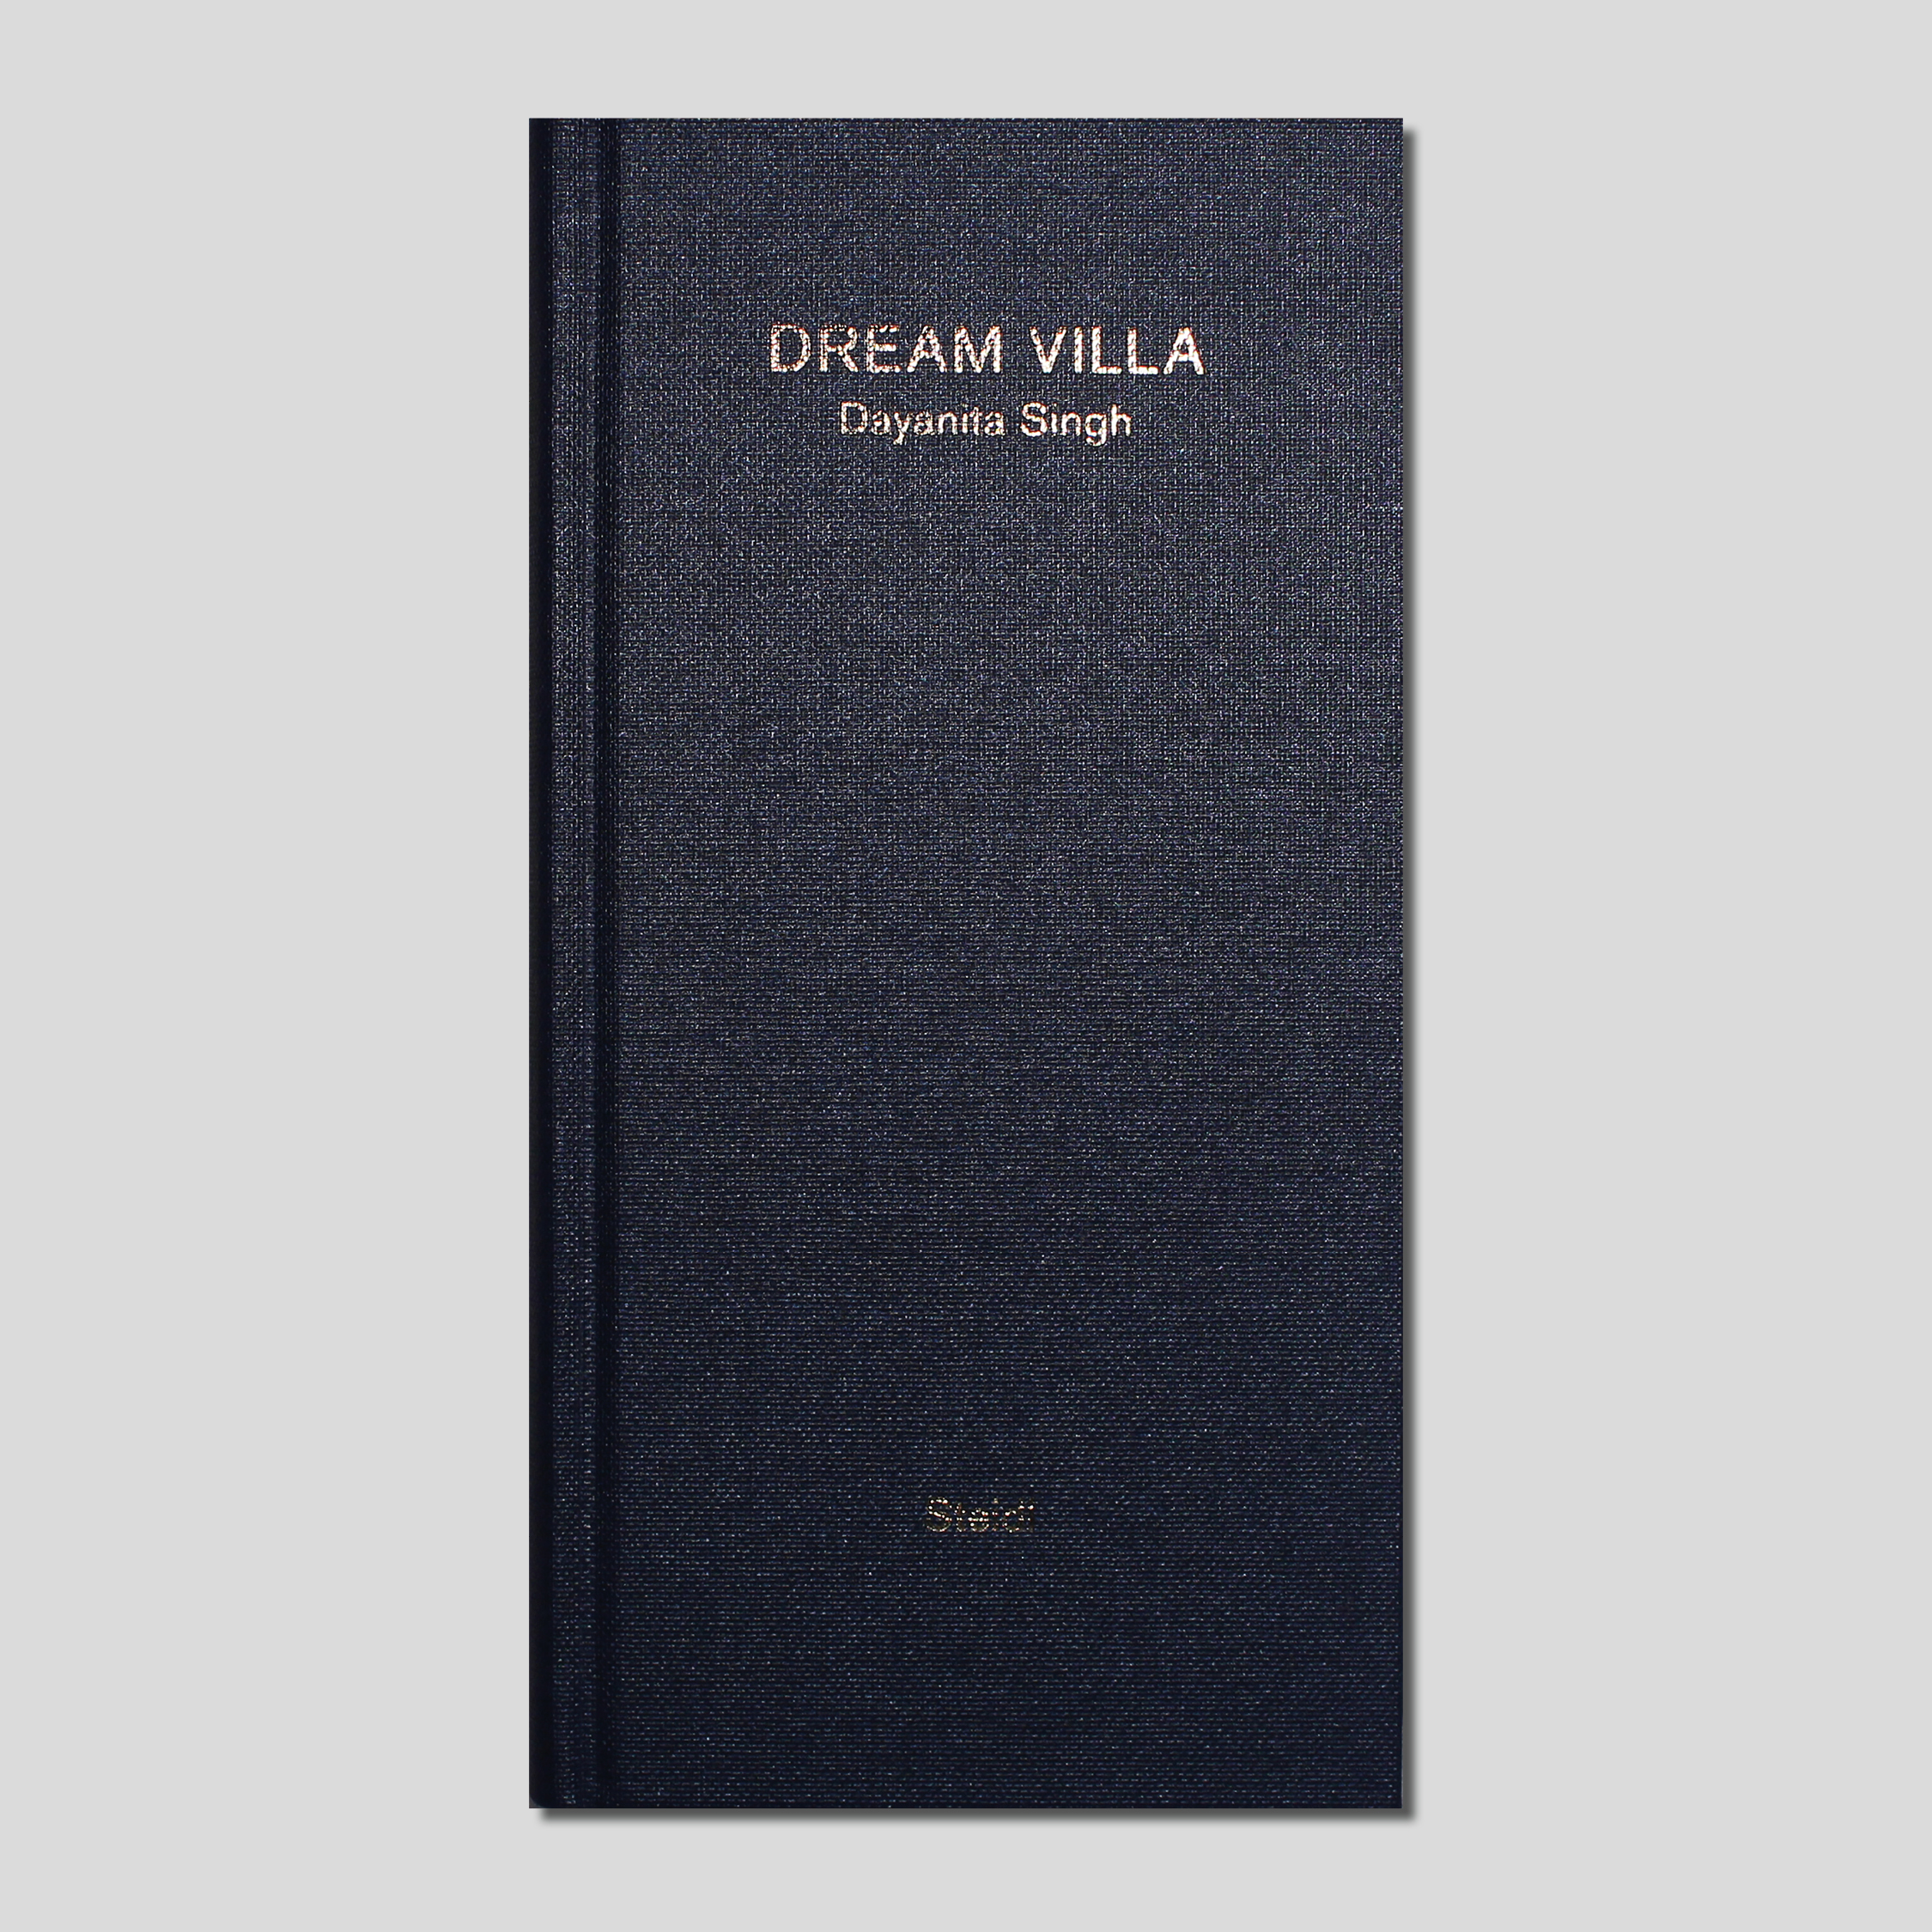 Dream Villa by Dayanita Singh